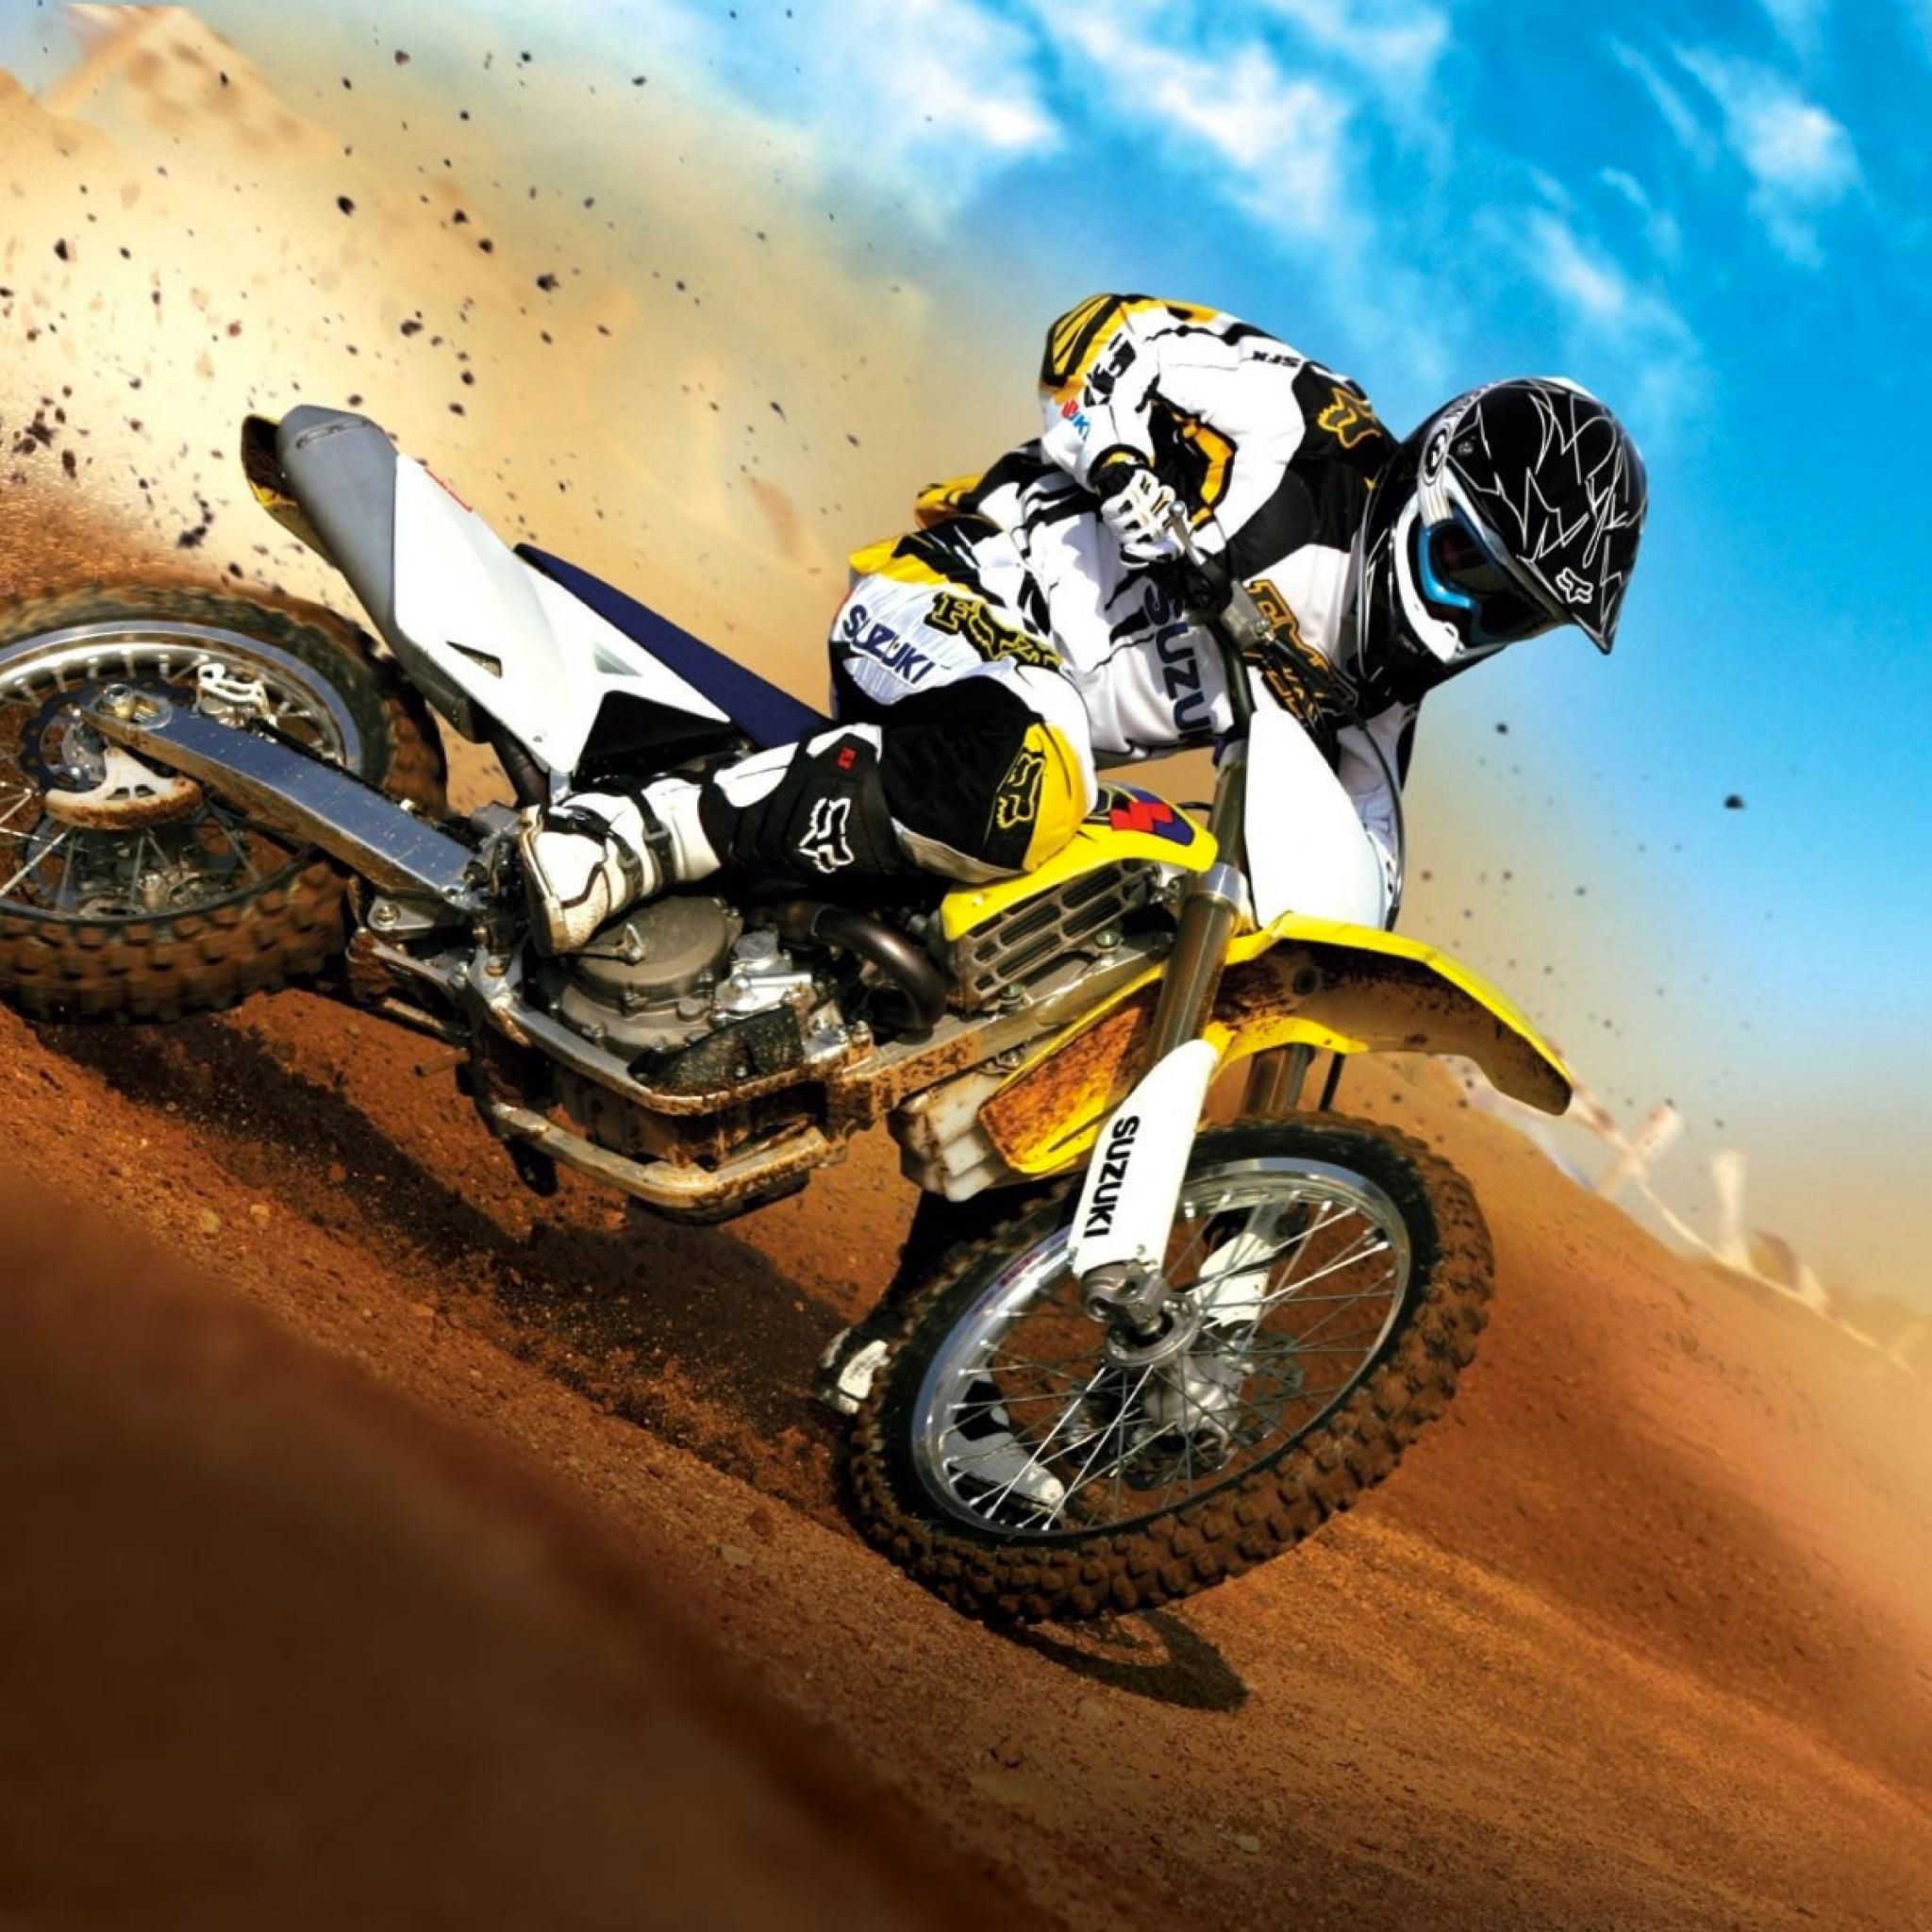 Moto-Sports-3Wallpapers-iPad-Retina